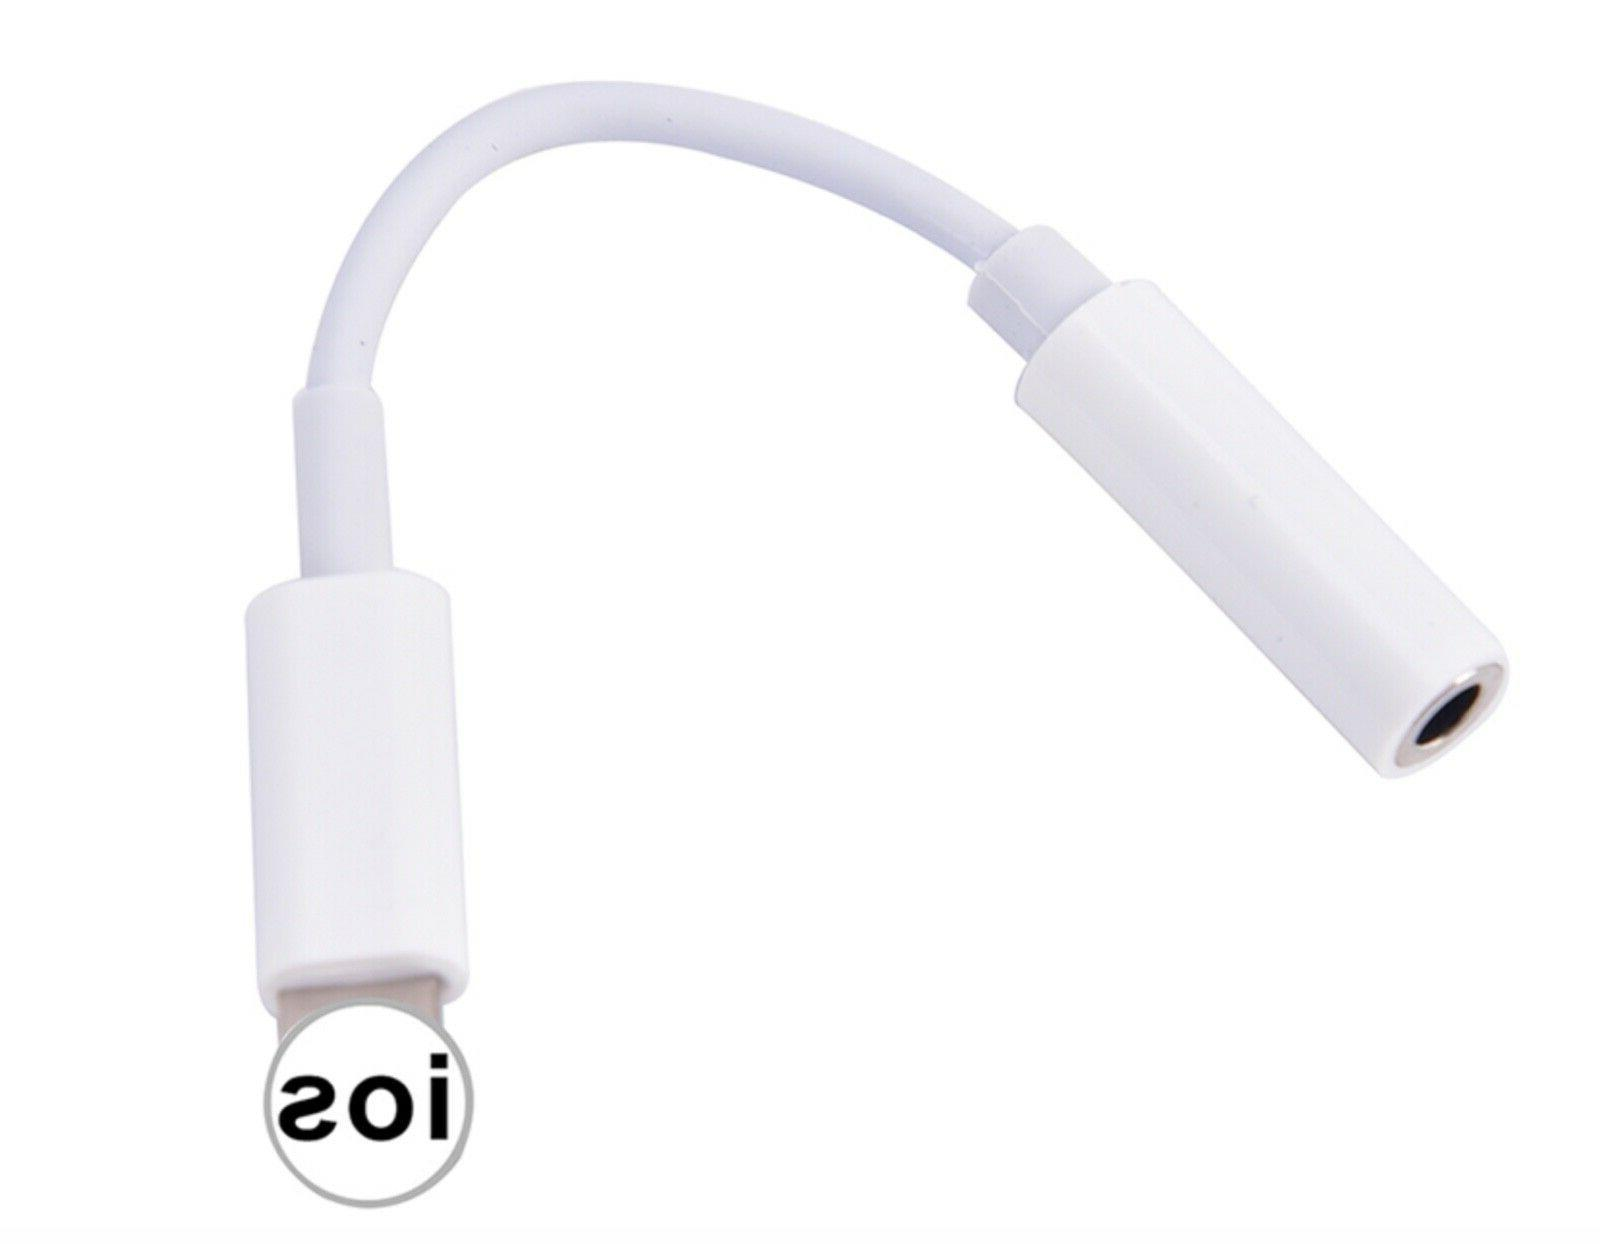 Headphone Adapter iPhone Jack Cable Adapters AUX Adapter SHIPPING